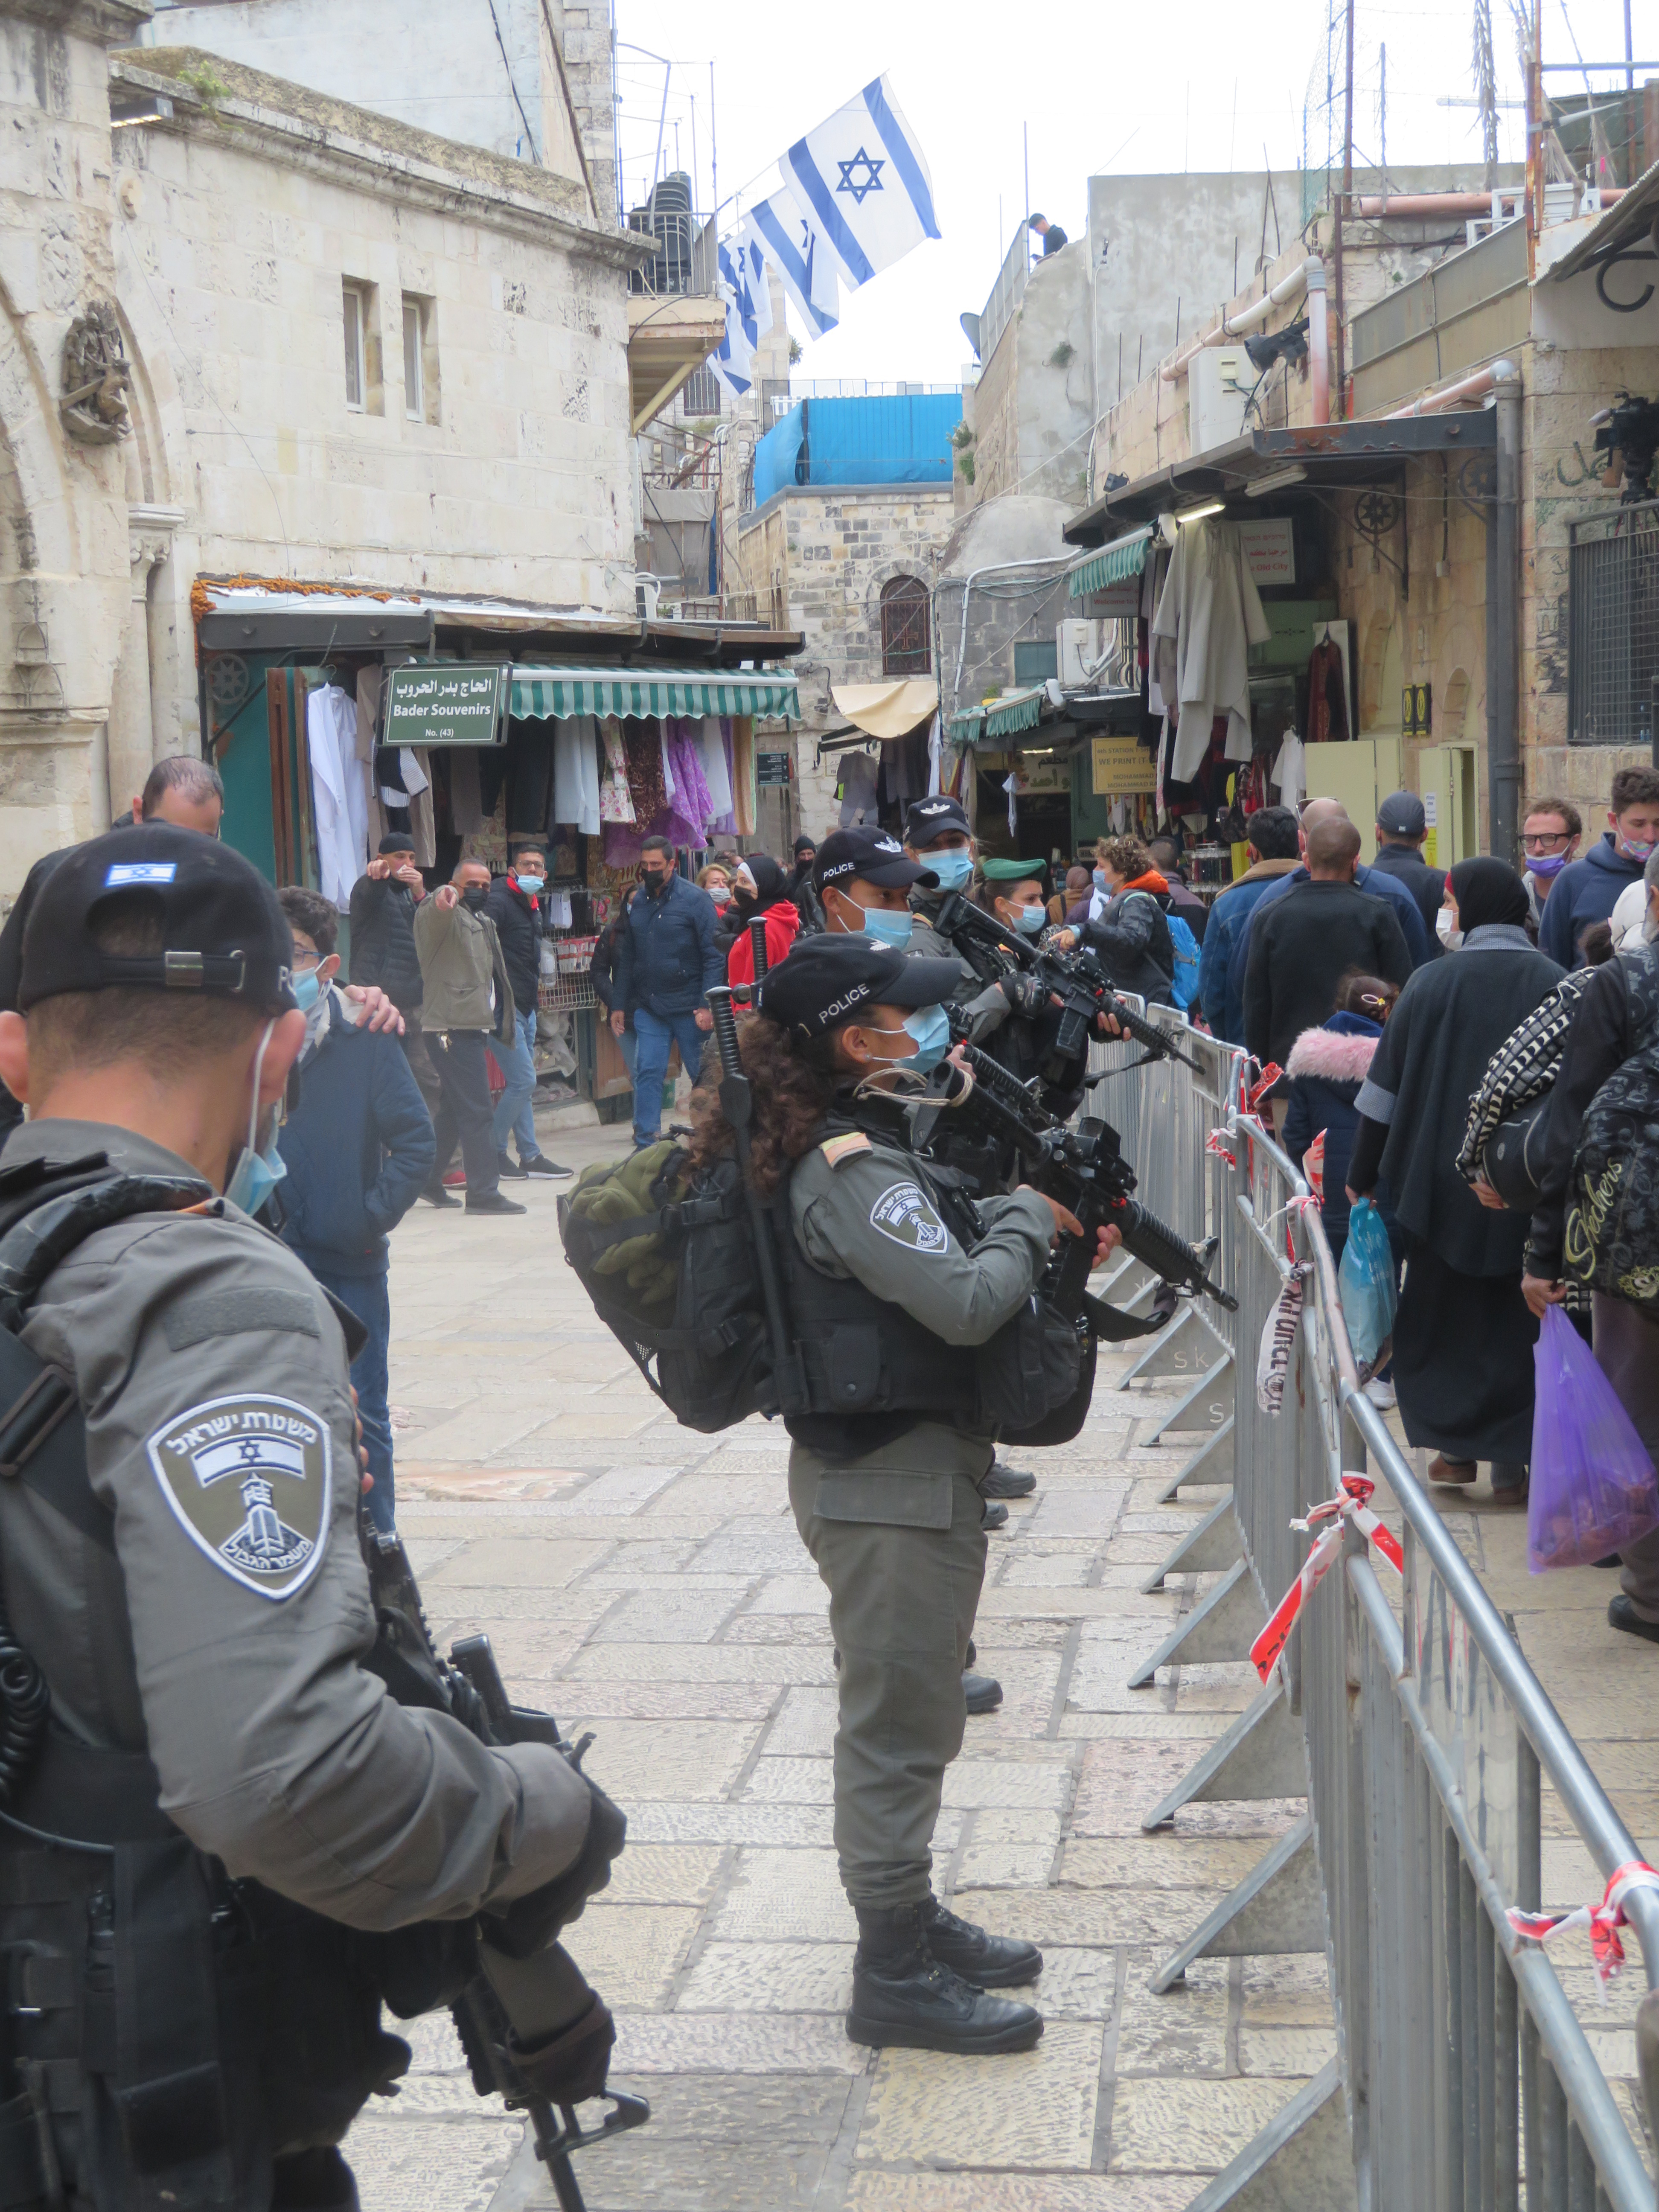 A heavier-than-needed Israeli police was present for a lighter-than-usual crowd on Good Friday in Jerusalem.